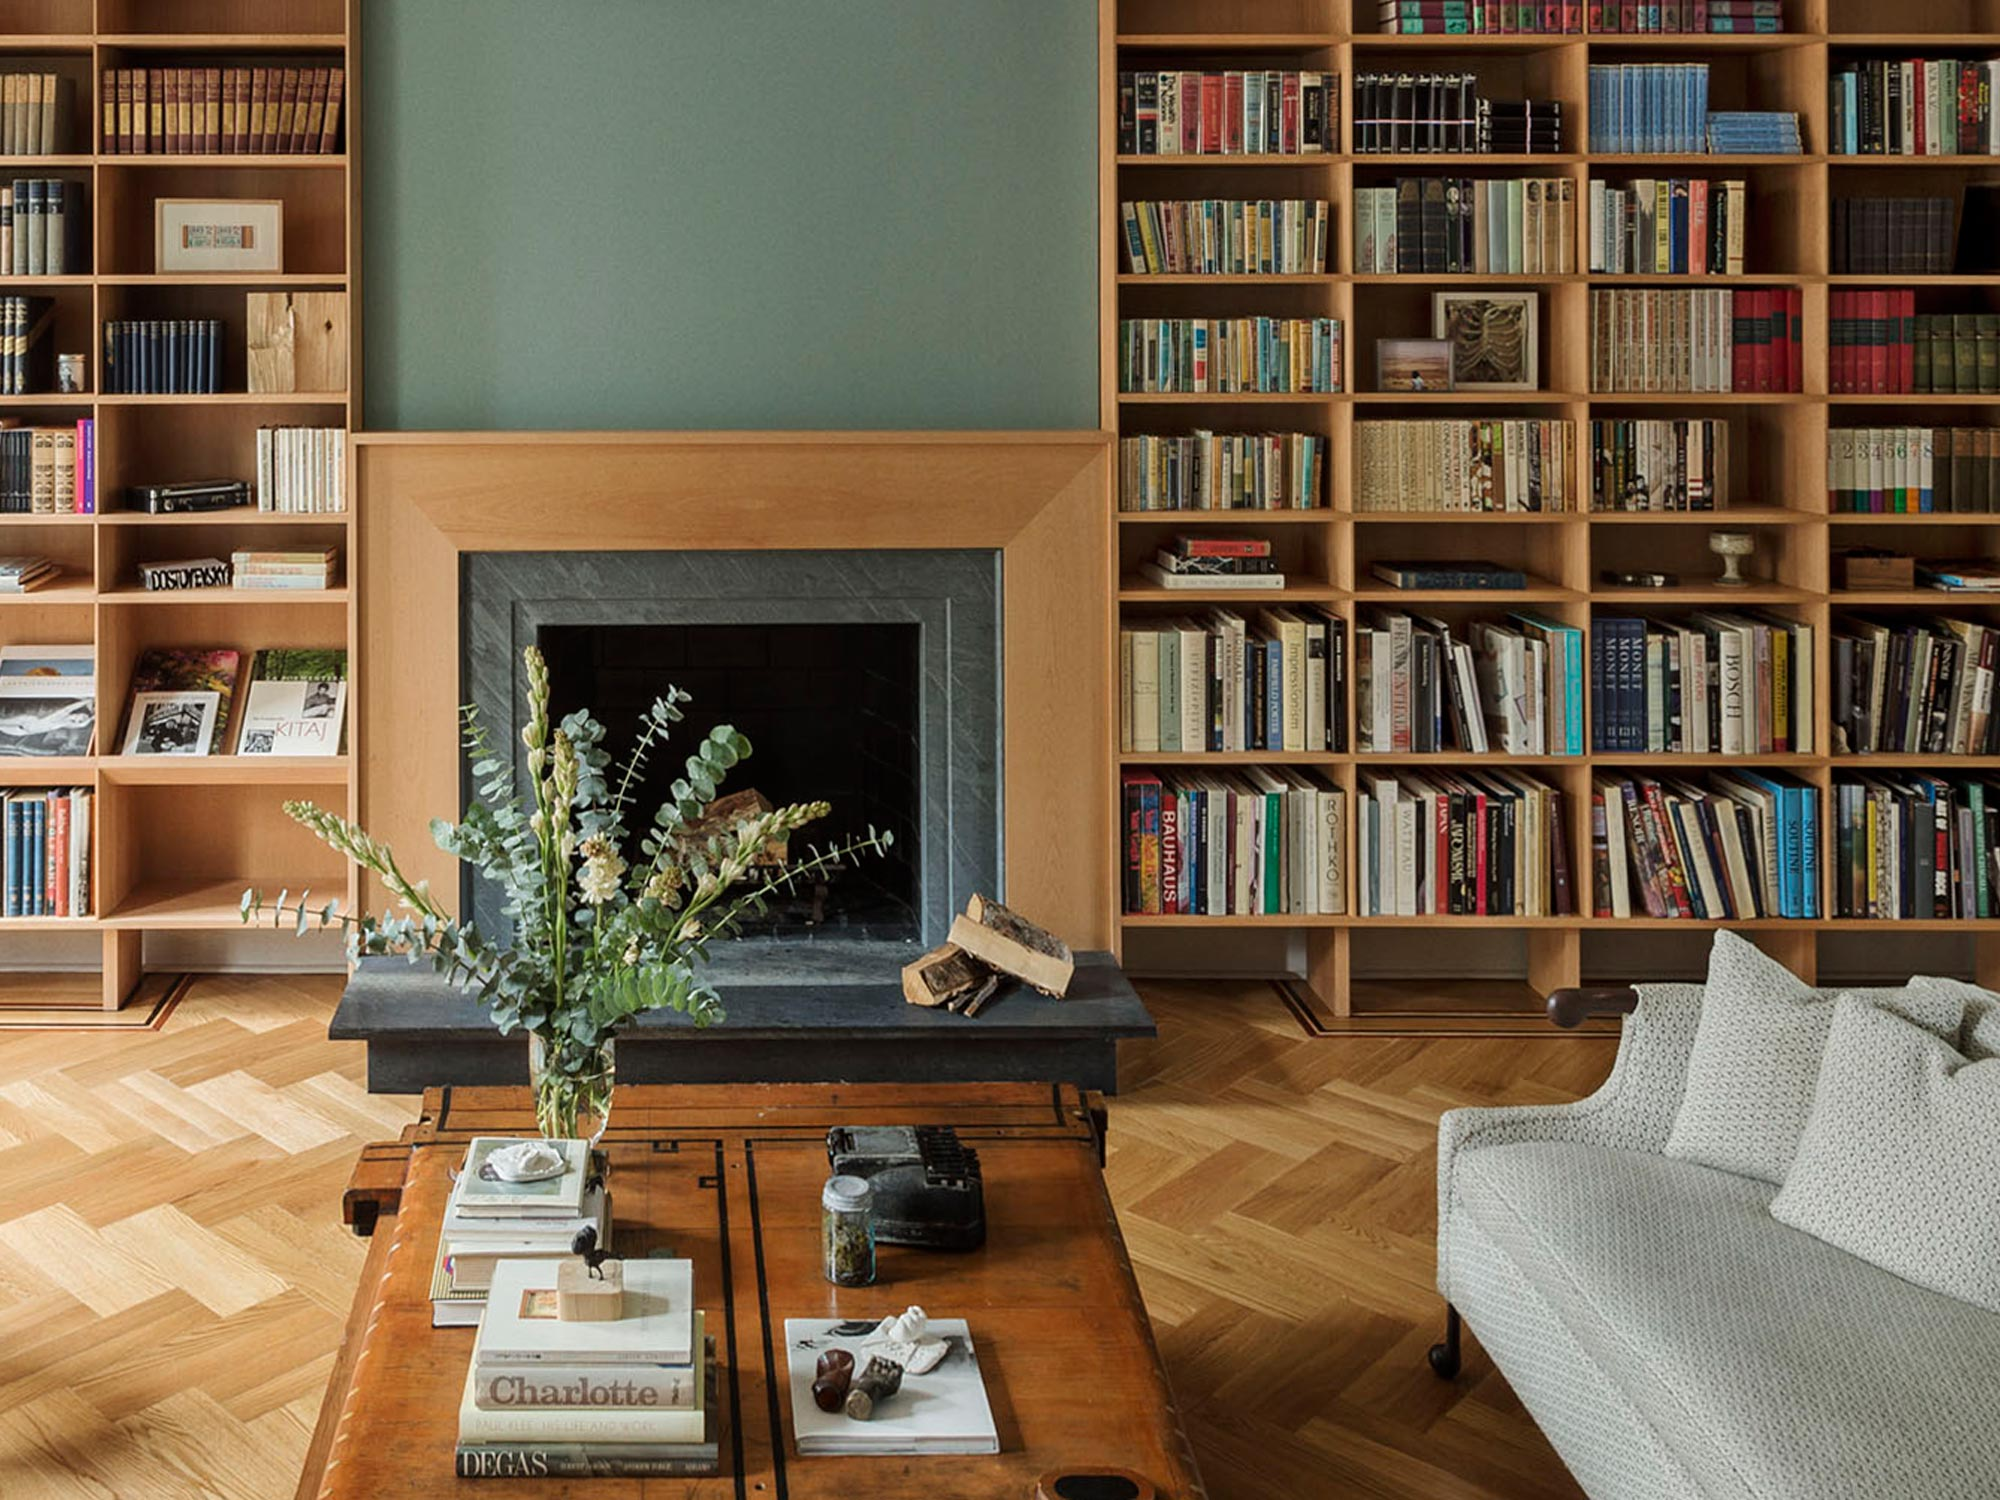 Fireplace - Living Room in Brooklyn, NY by Workstead